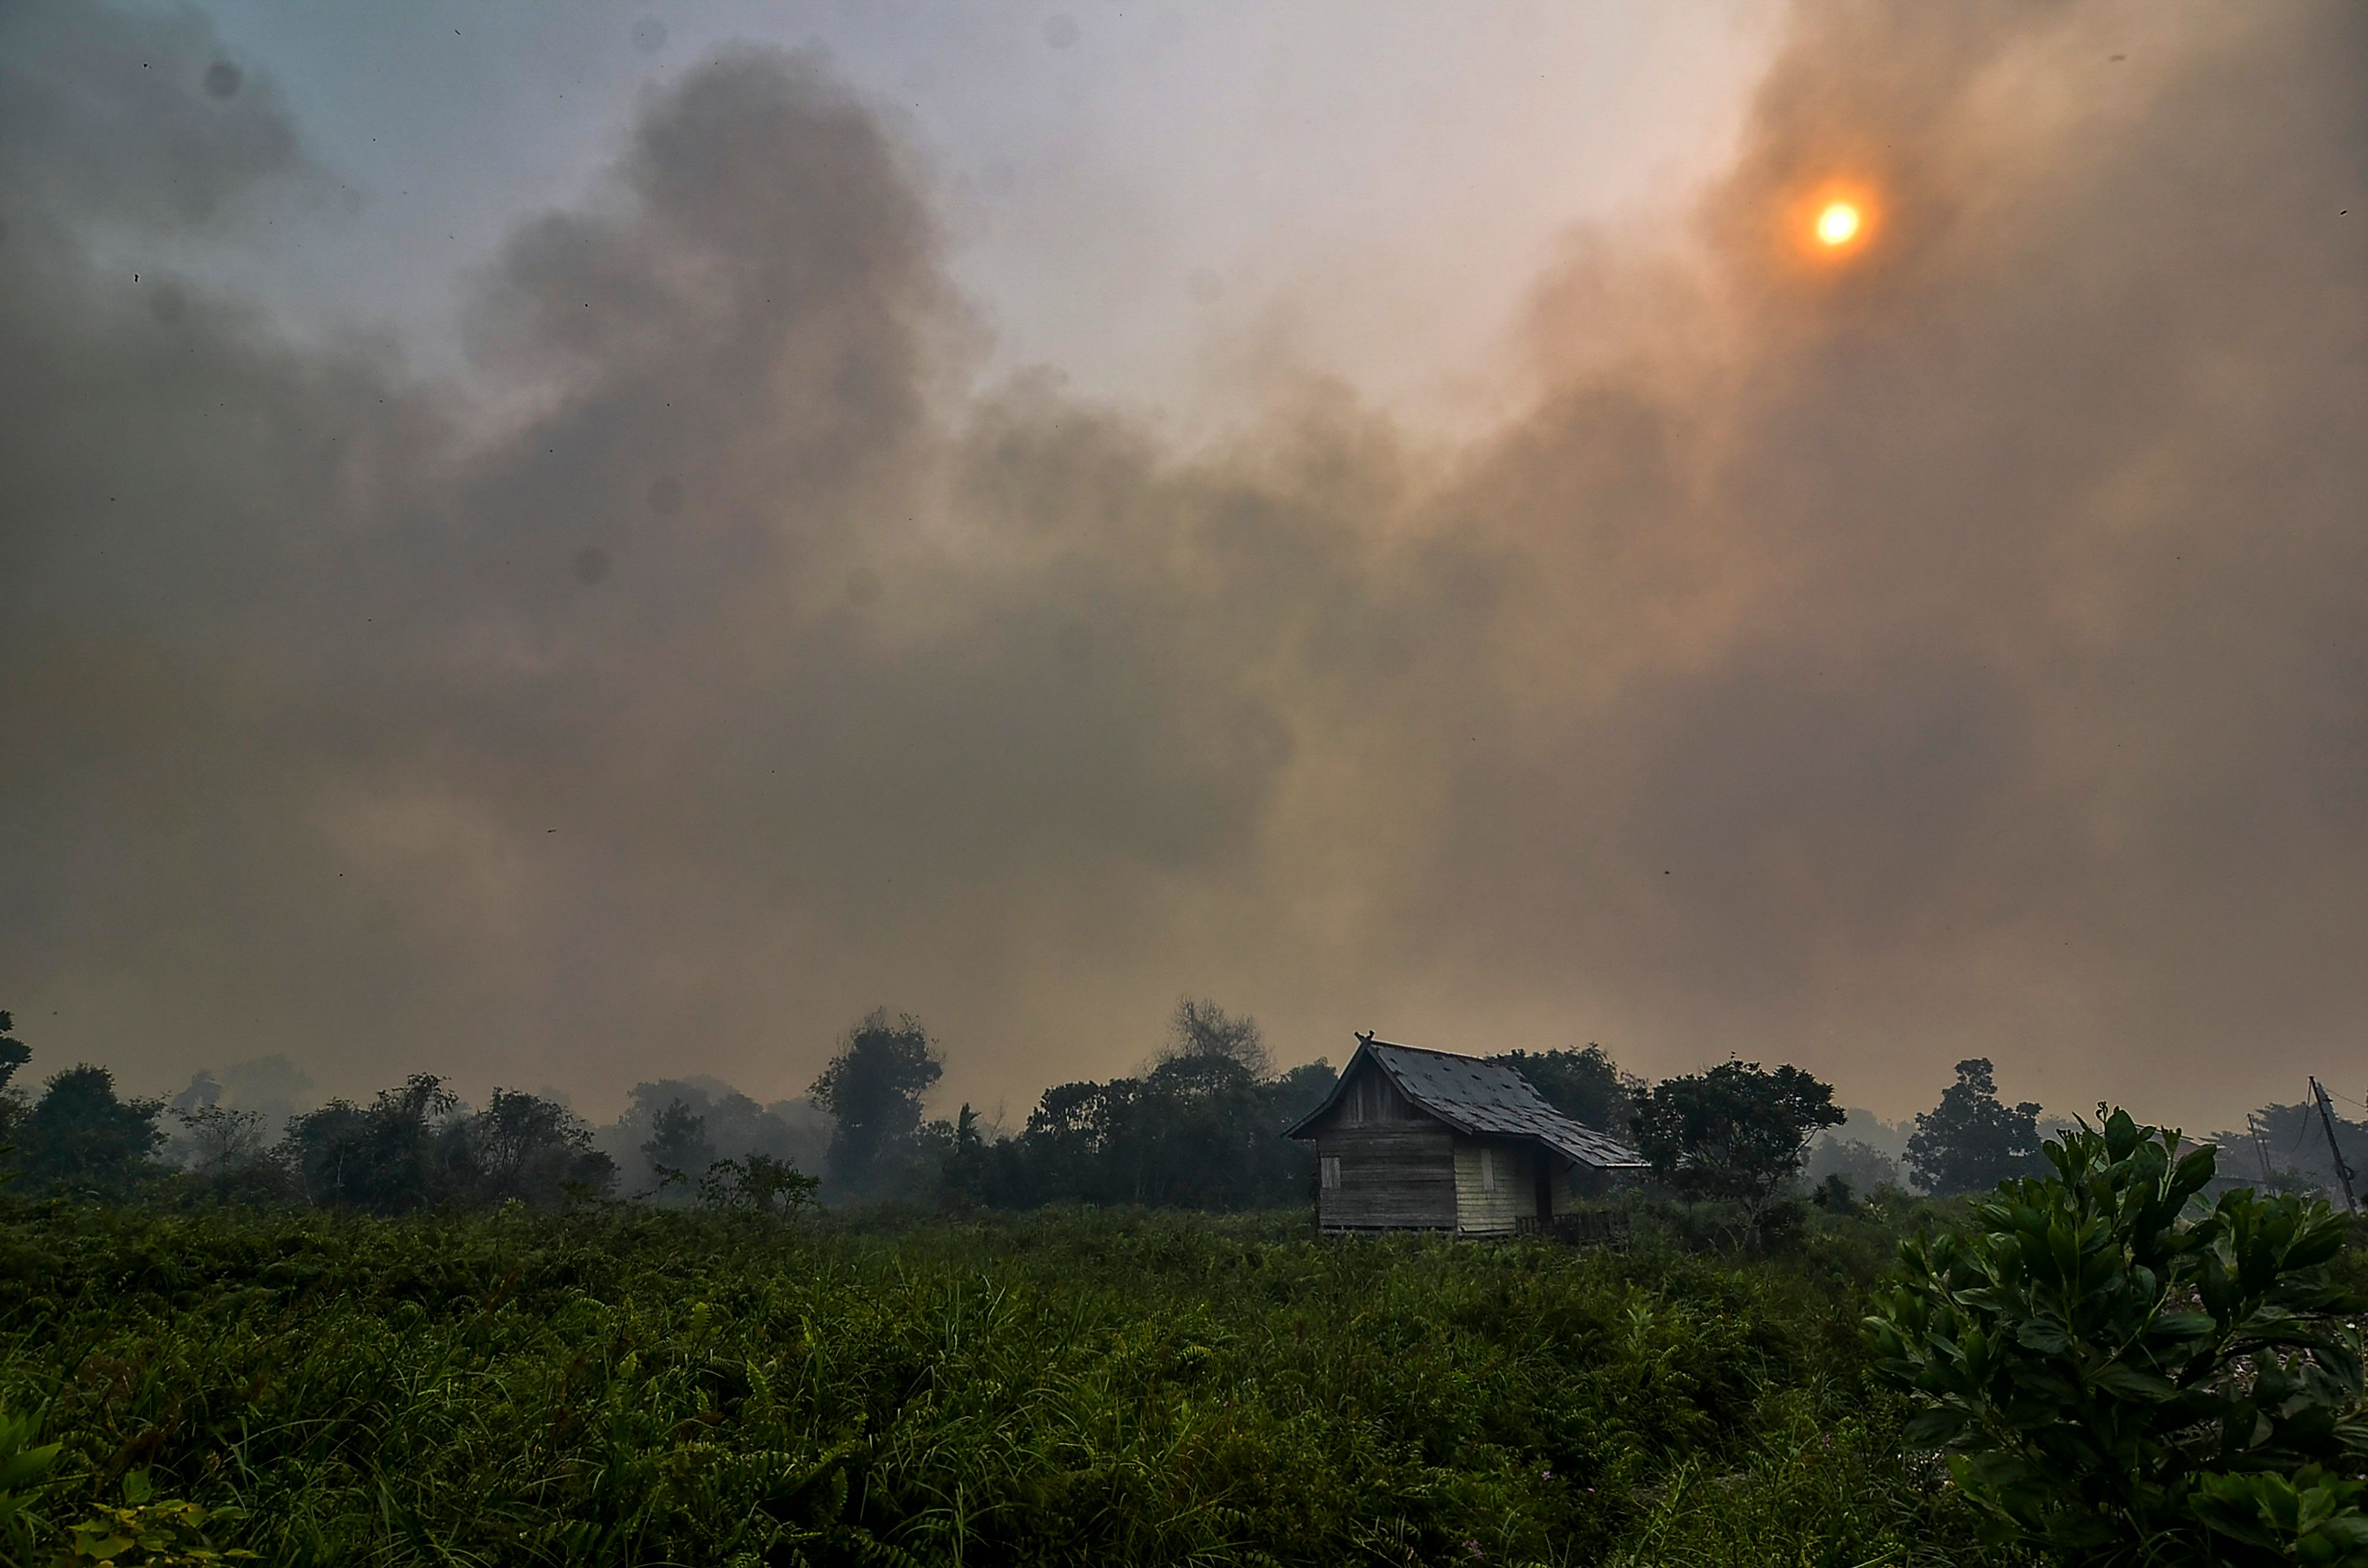 Thick smoke from a forest fire nearly covers the sun over Pekanbaru in Riau province on September 18, 2019.